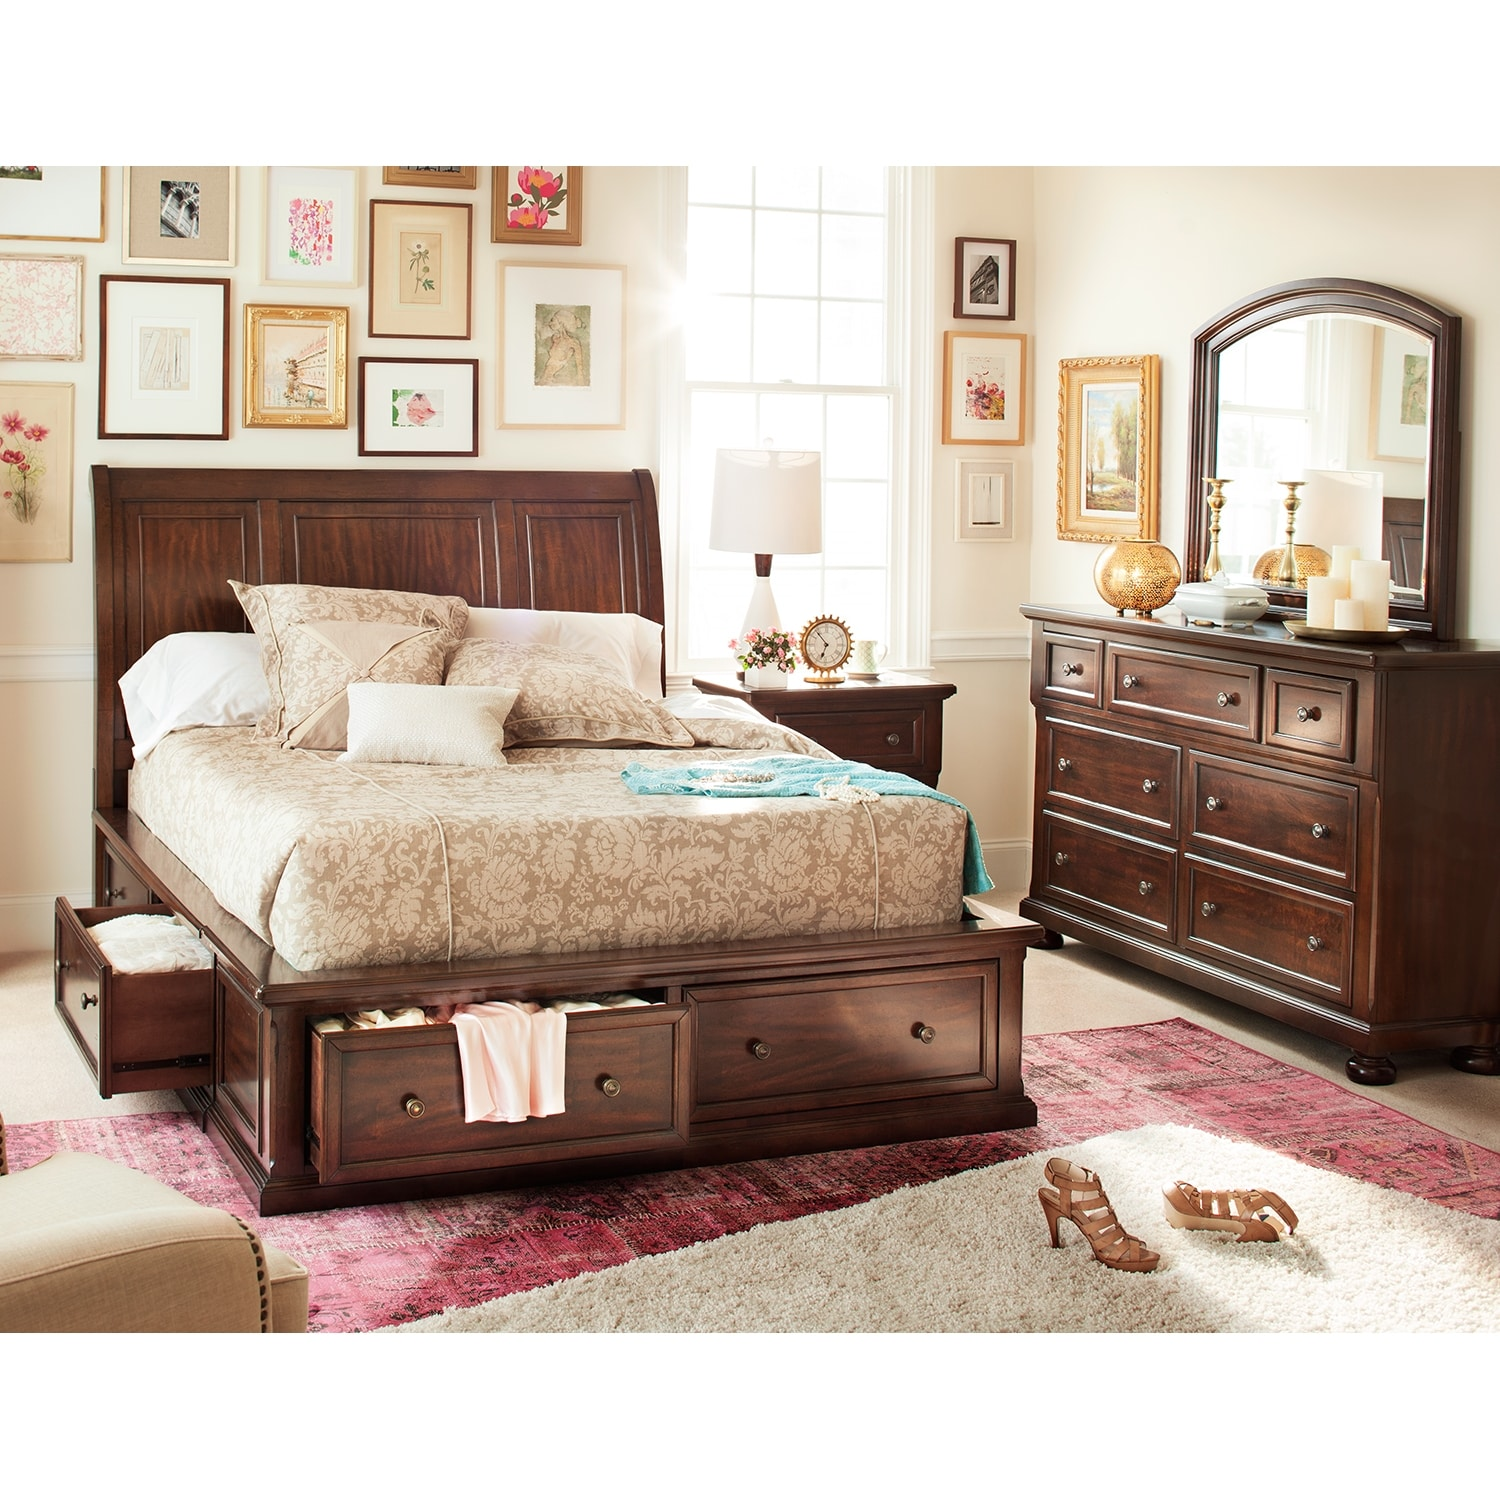 Hanover 5 piece king storage bedroom cherry american for American furniture king bedroom sets